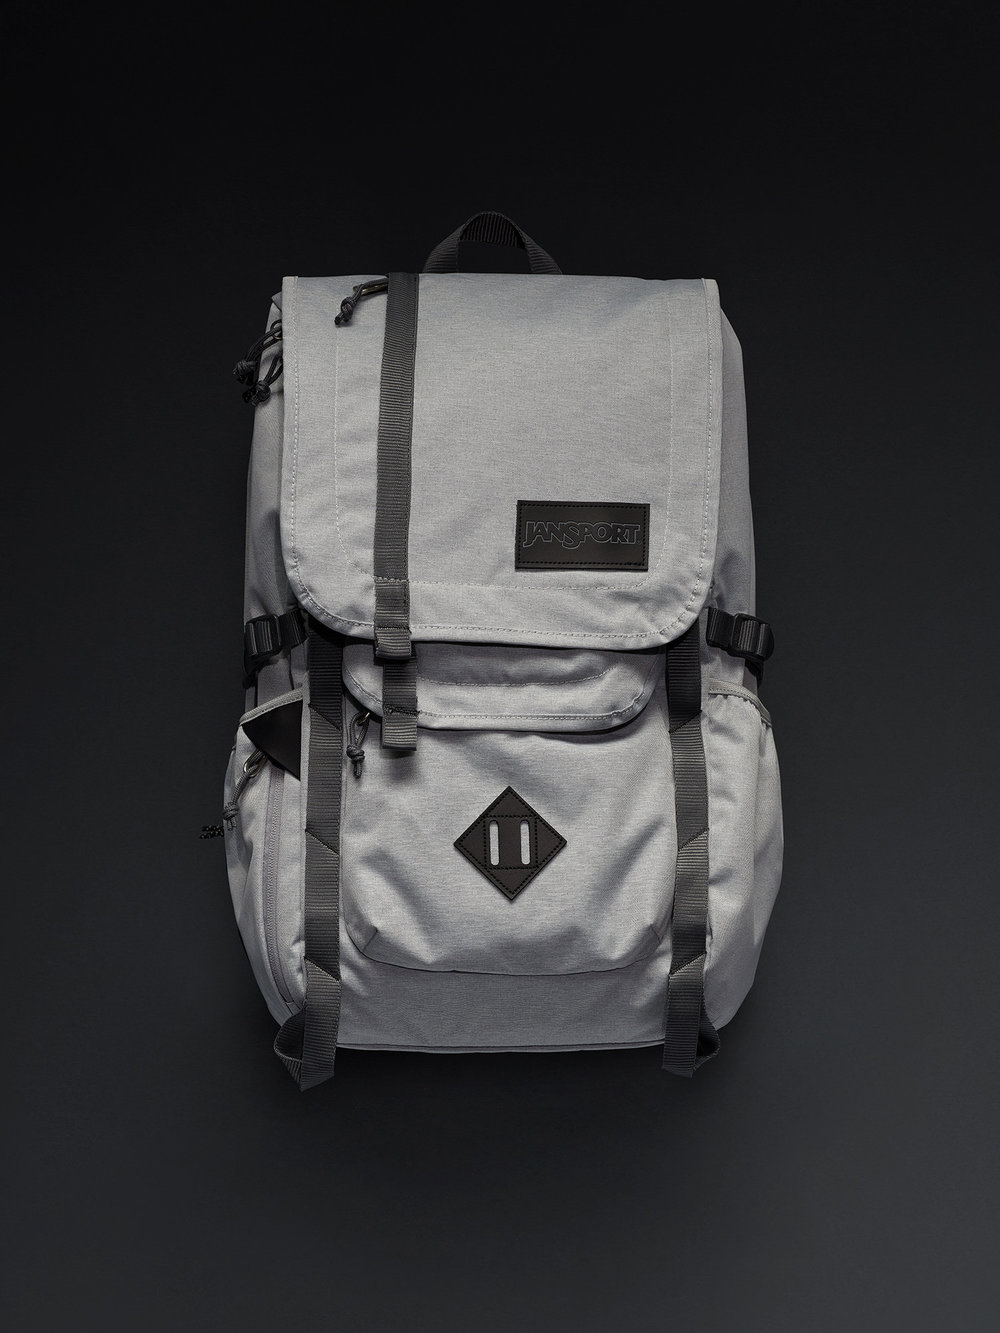 Montana_McLean_Whitington_Jansport-Hatchet-4b.jpg